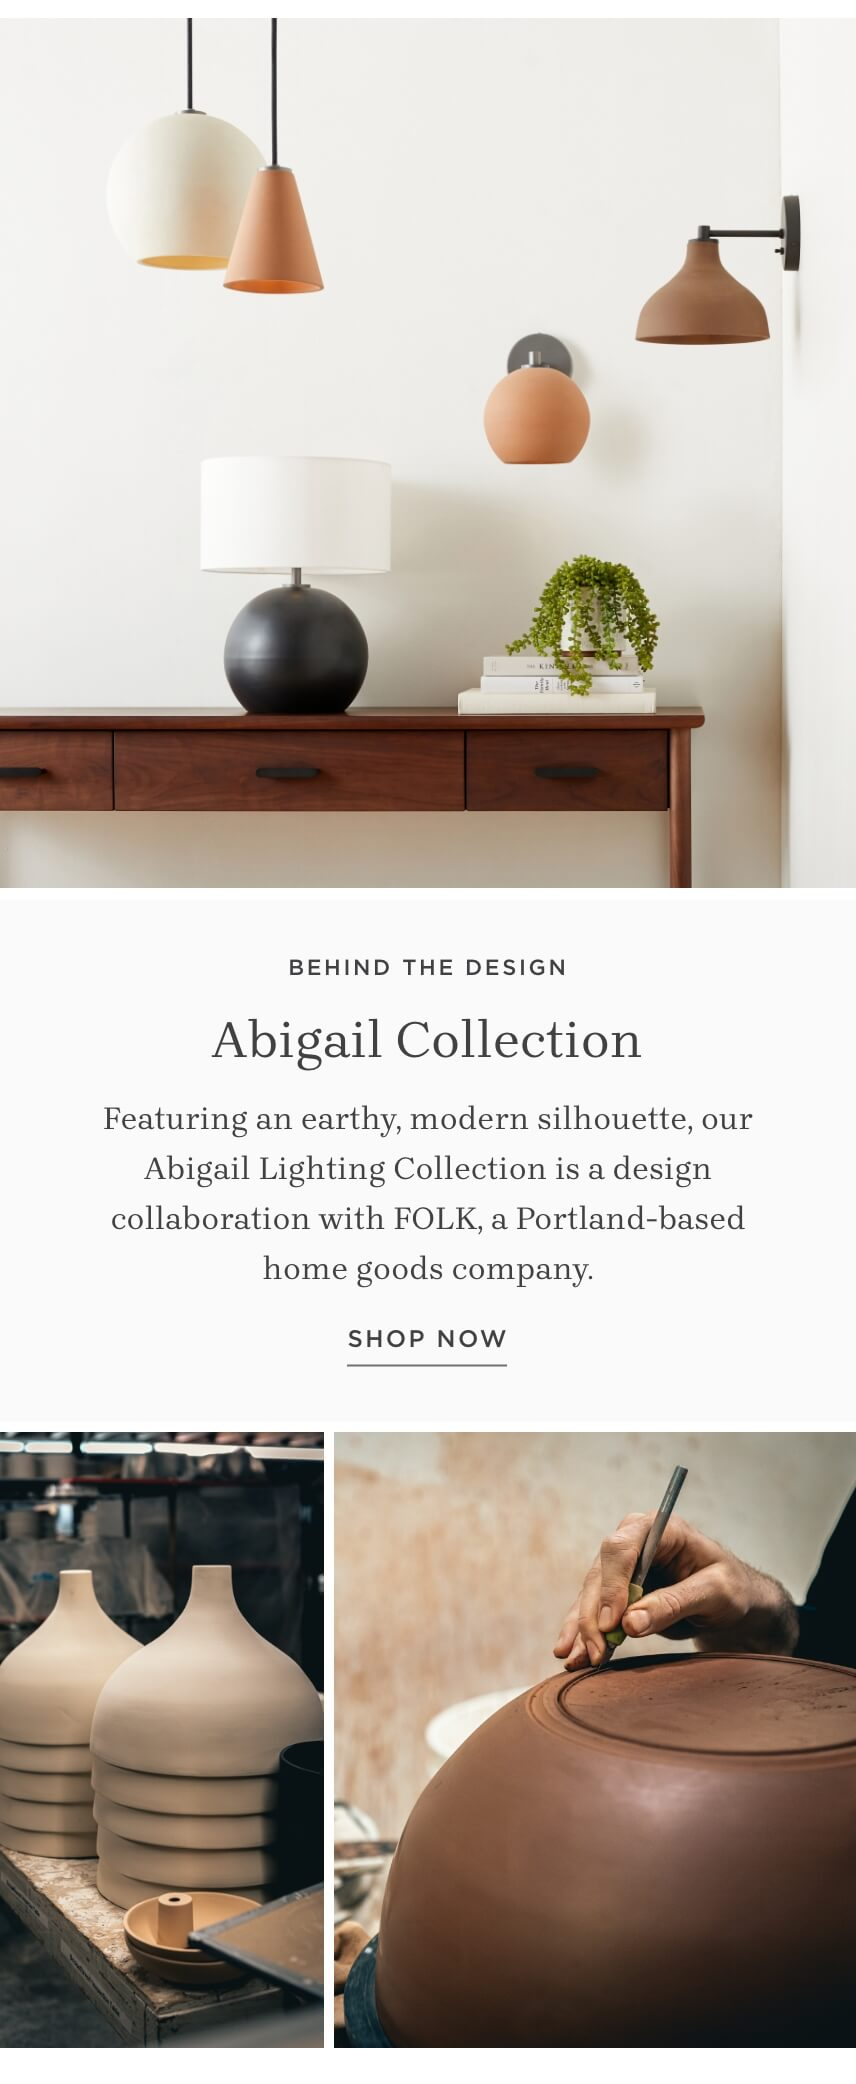 Shop the Abigail Lighting Collection